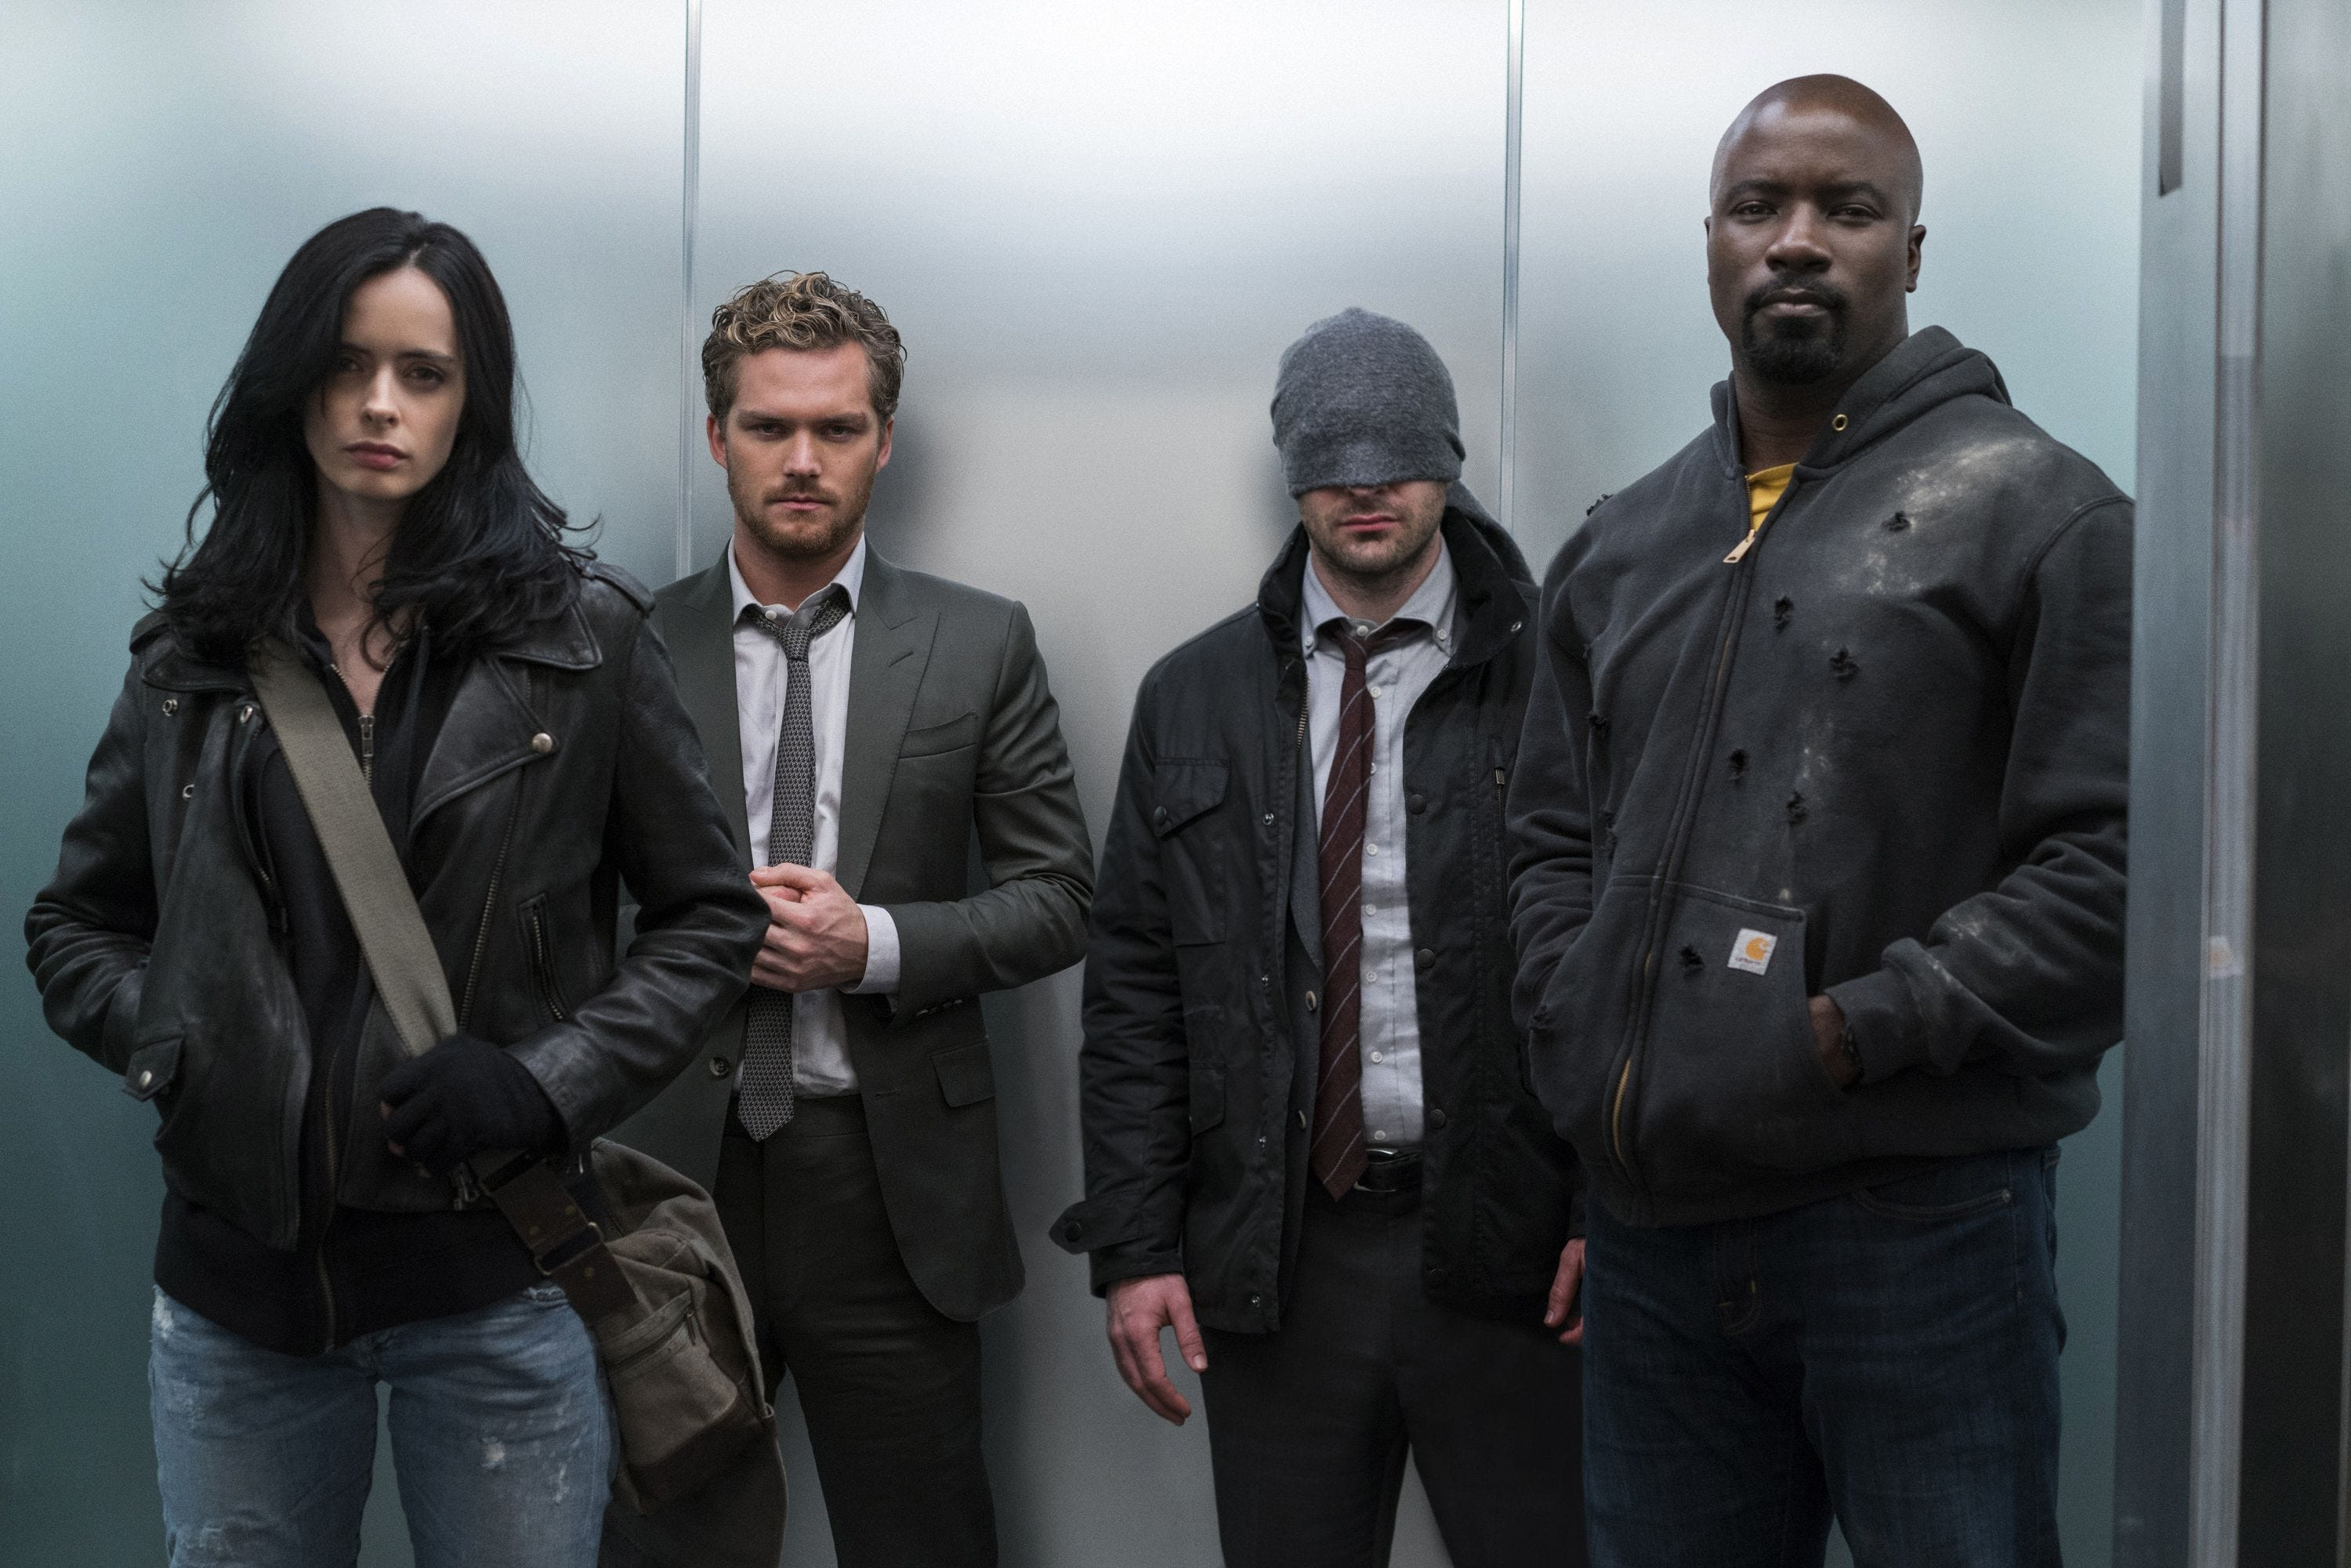 636360144719850786-002-GT-103-Unit-05488R4 Comic-Con: 'The Defenders' continues the expansion of Netflix's Marvel world